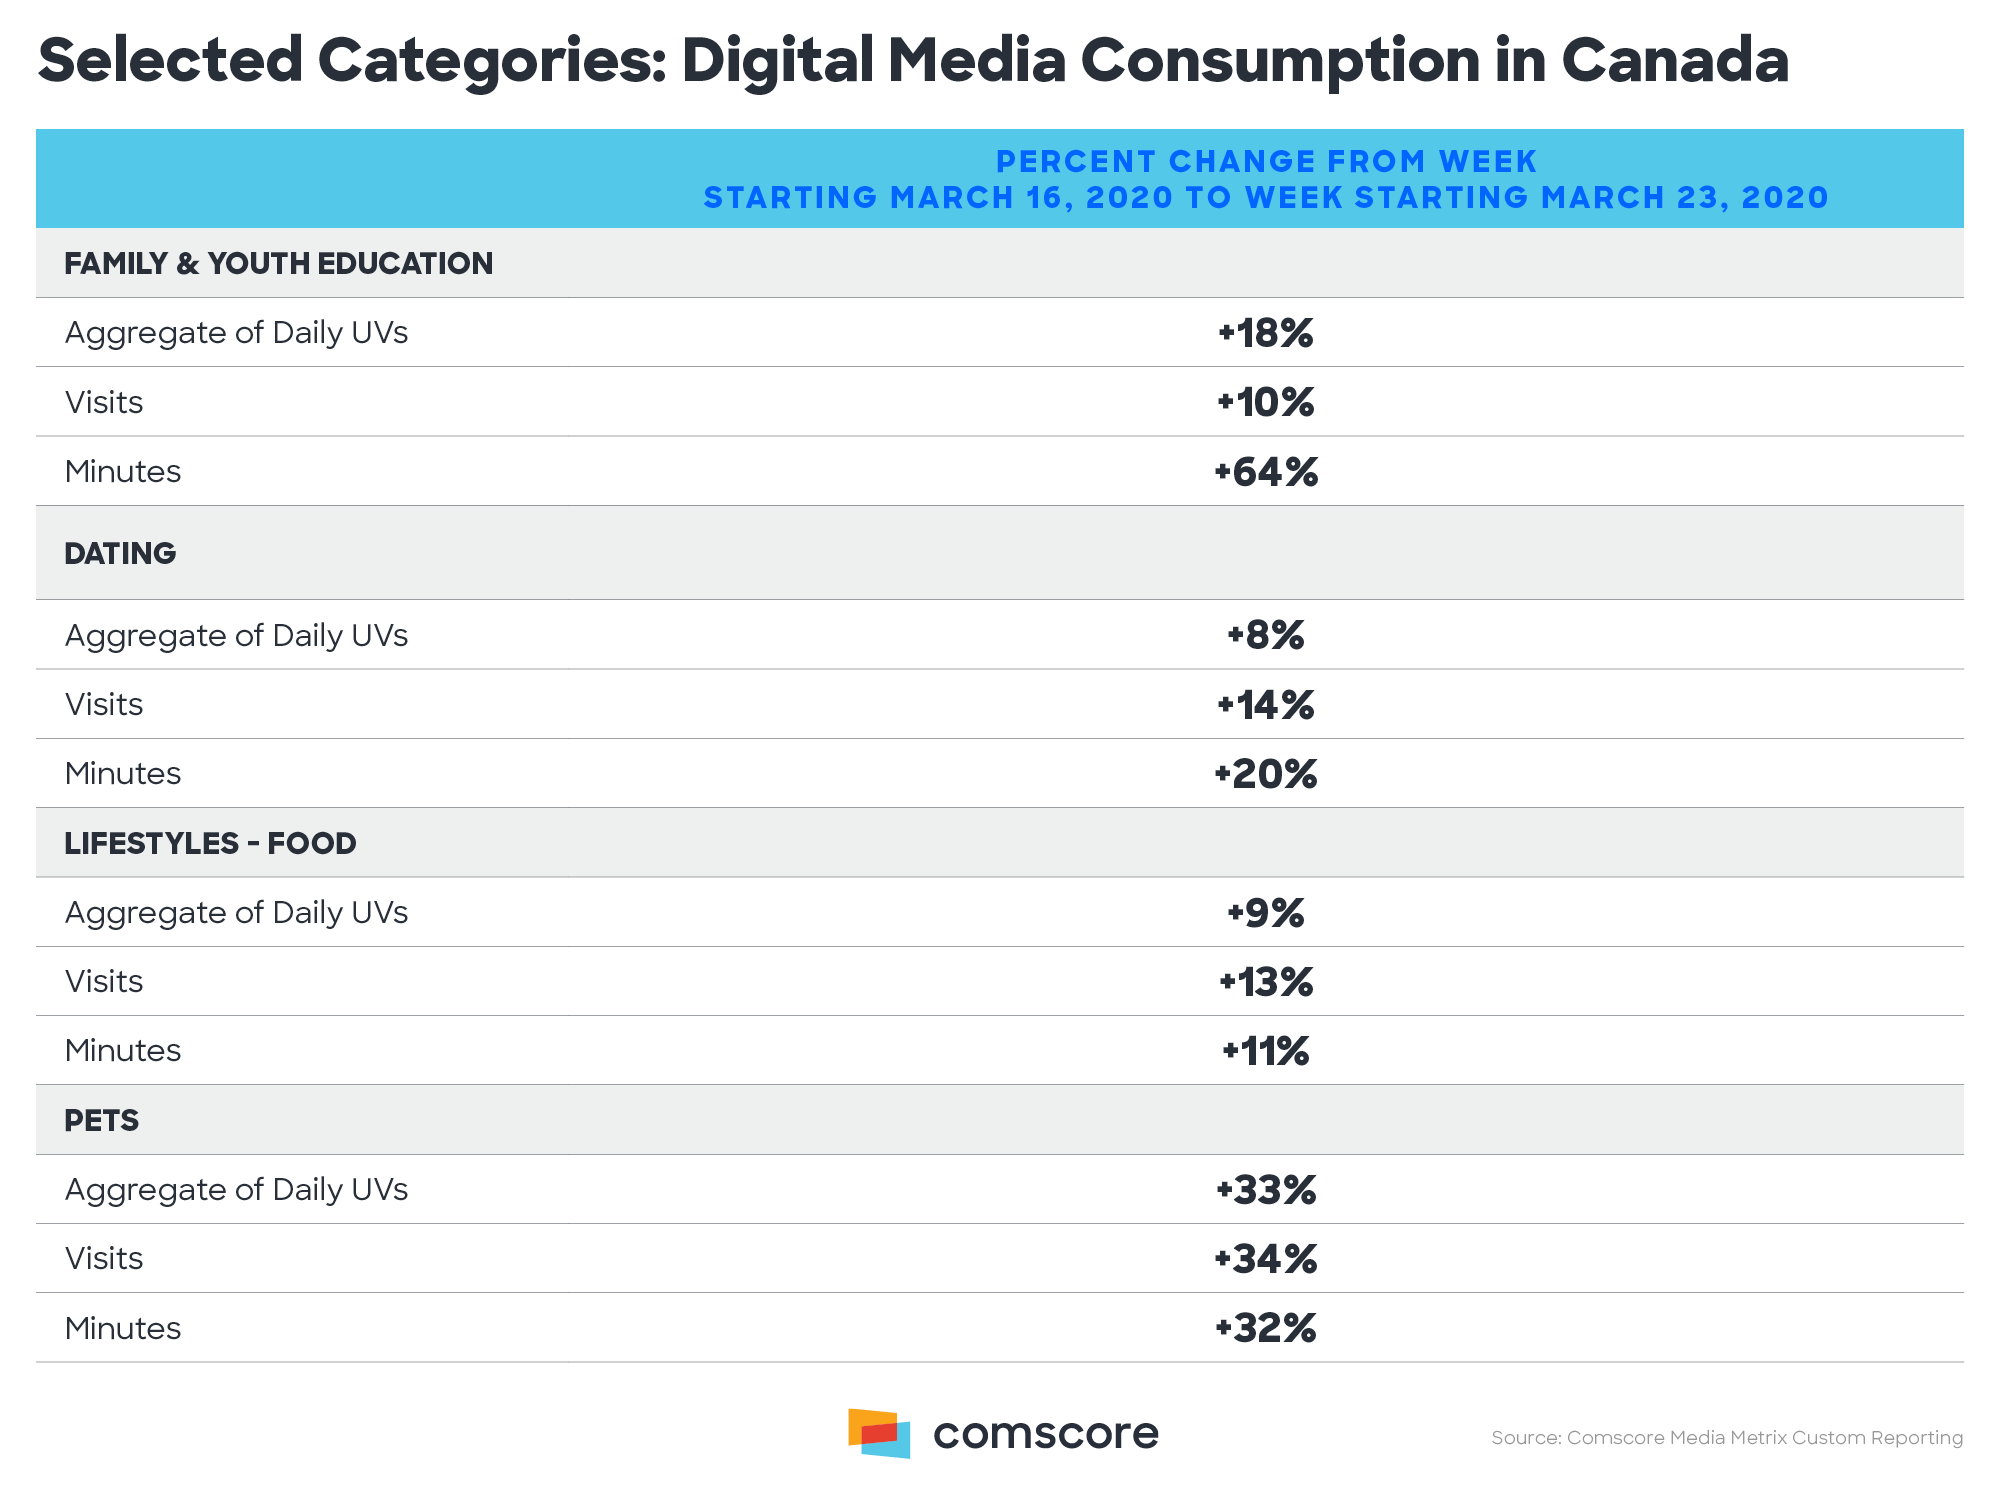 Selected Categories Digital Media Consumption in Canada